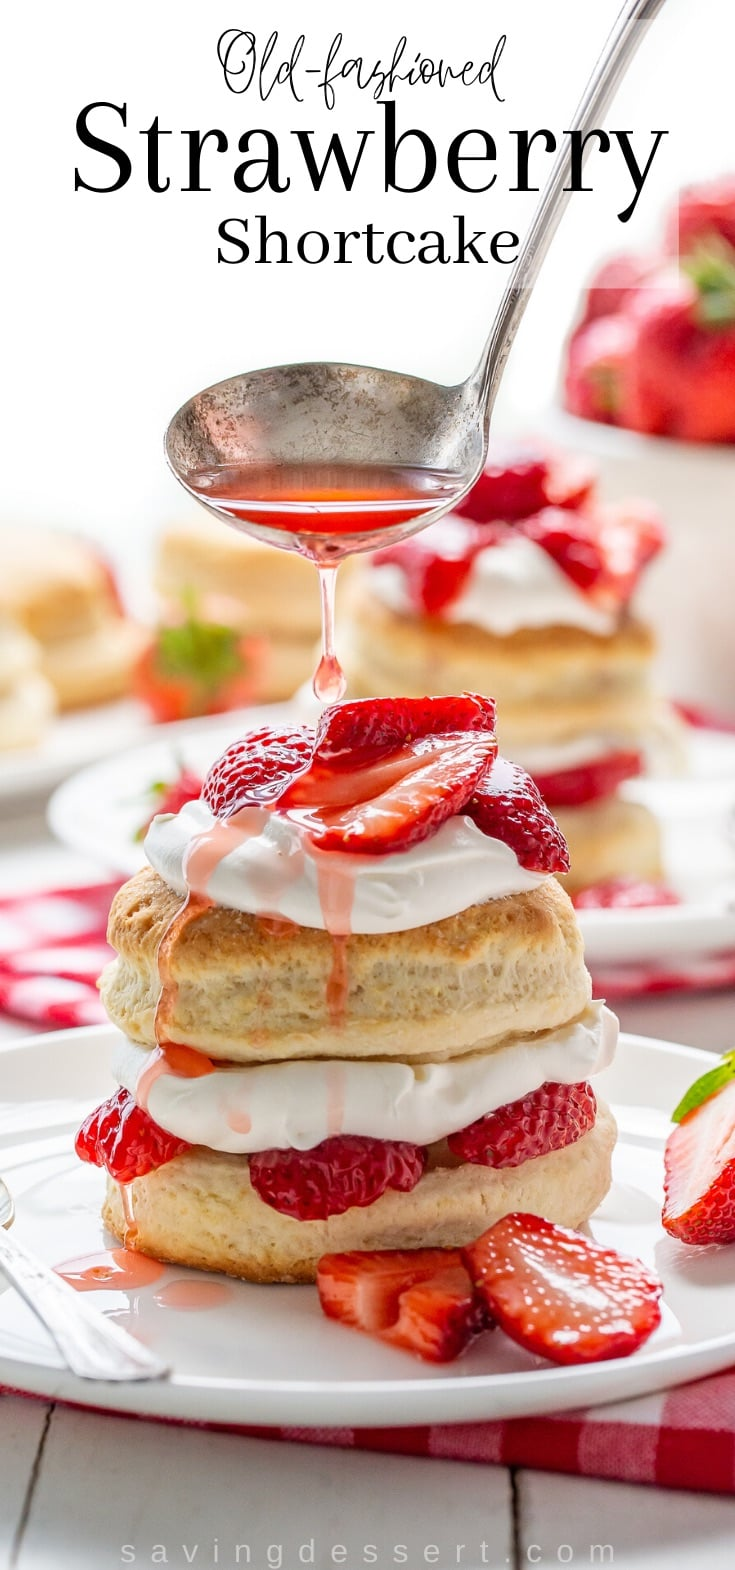 Strawberry syrup drizzled over a stacked strawberry shortcake